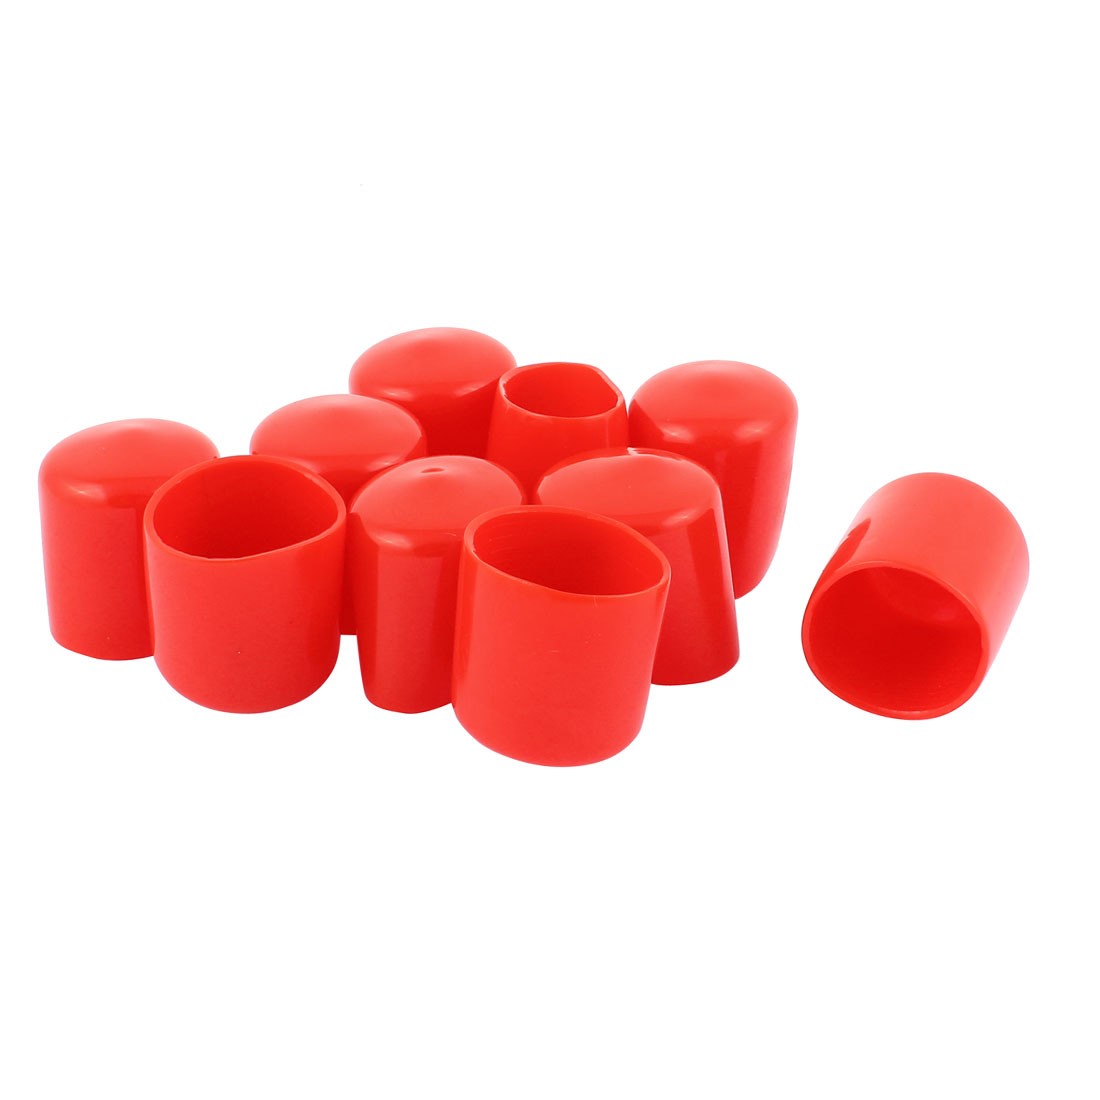 10pcs 28mm Inner Dia Vinyl End Cap Wire Cable Tube Cover Protector